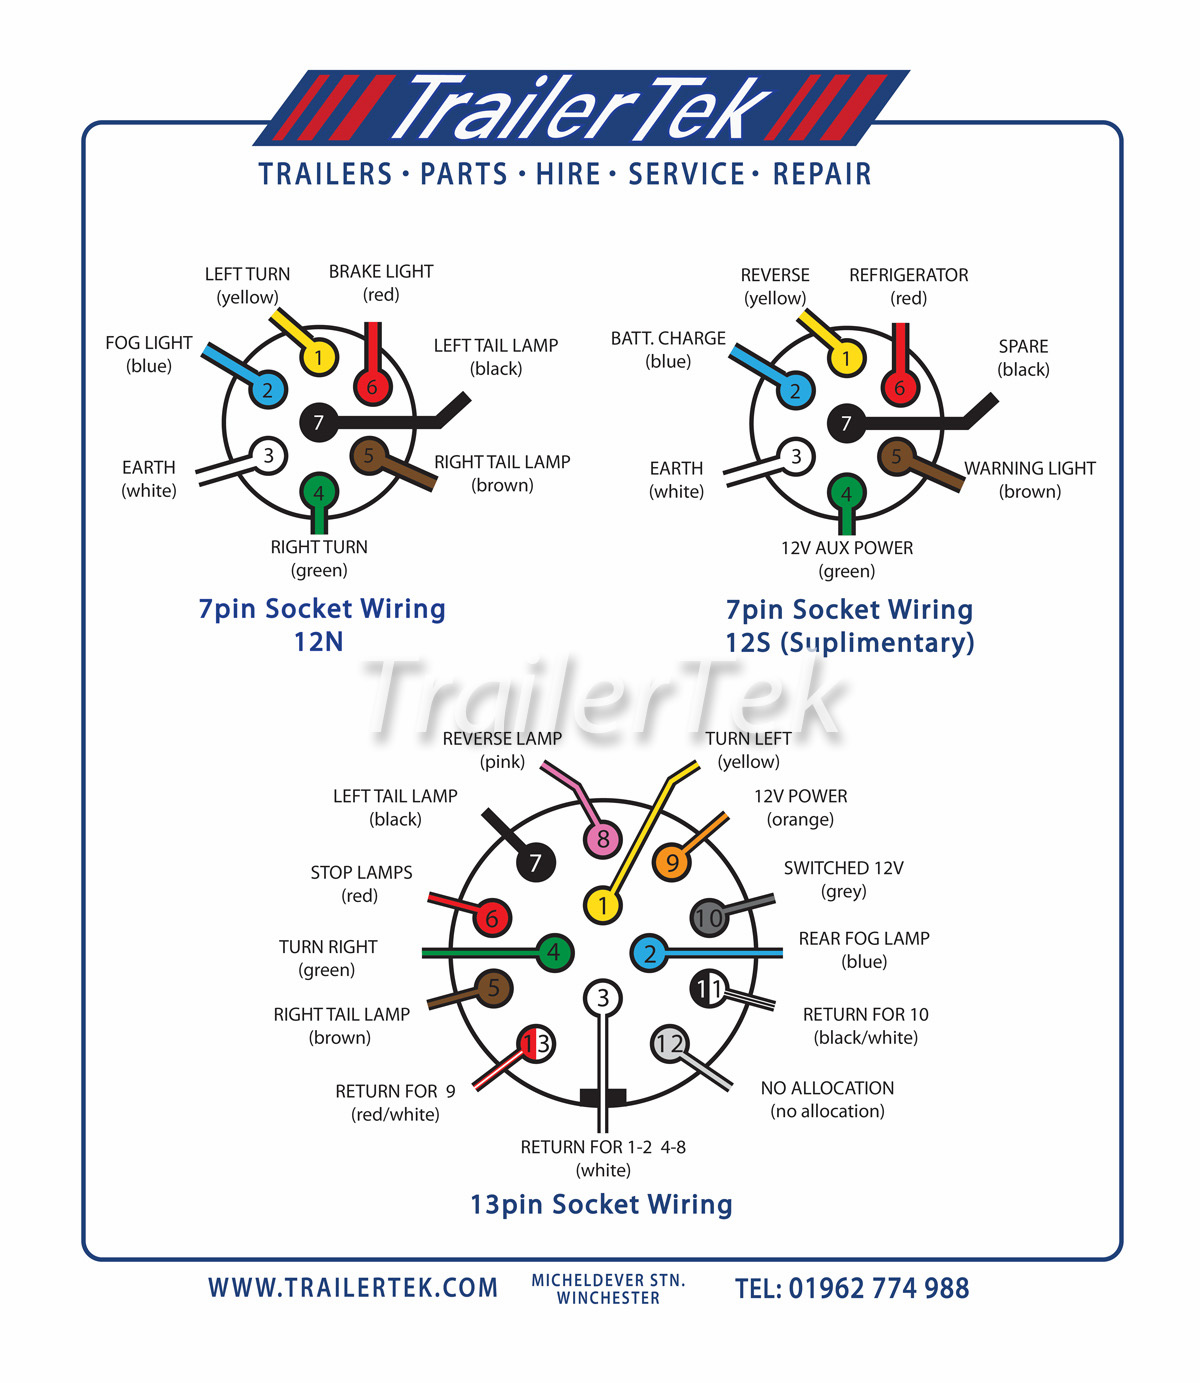 Coromal caravan wiring diagram wiring diagram database aeonhart com jayco caravan wiring diagram with amazing inspirational switched outlet wiring diagram coromal caravan wiring diagram asfbconference2016 Images